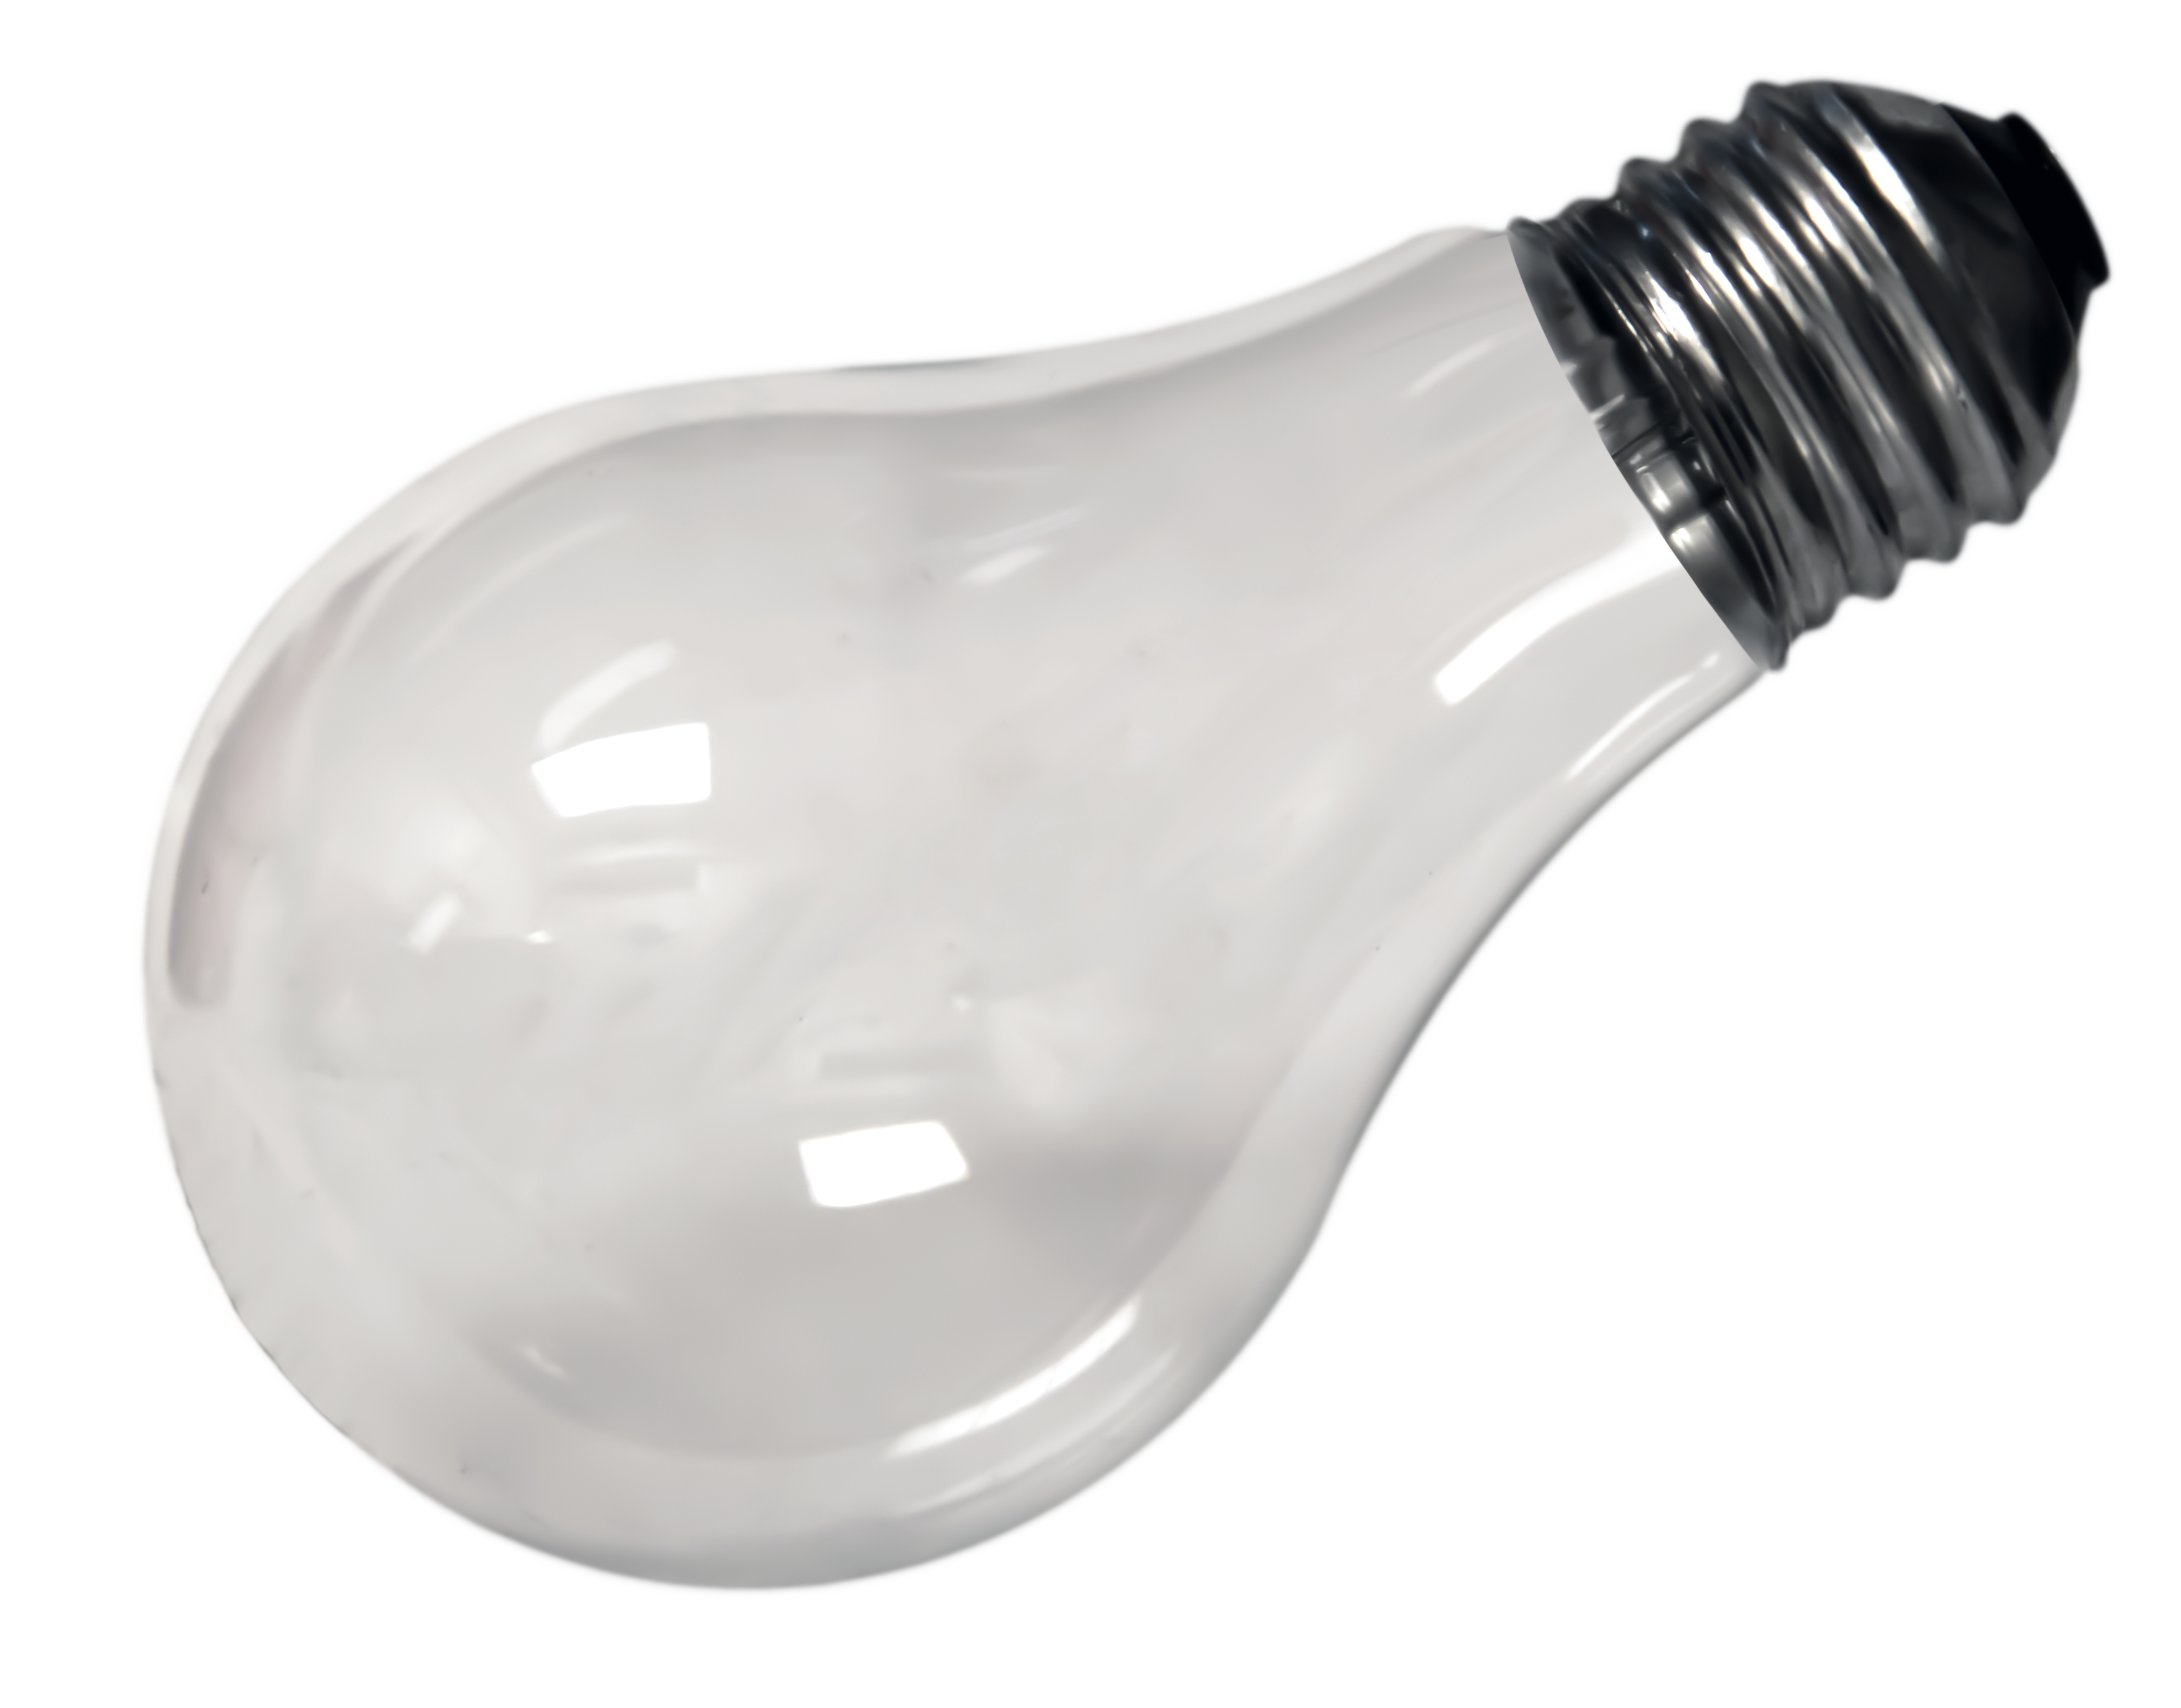 Light Bulb Png Picture PNG Image - Light Bulb PNG HD